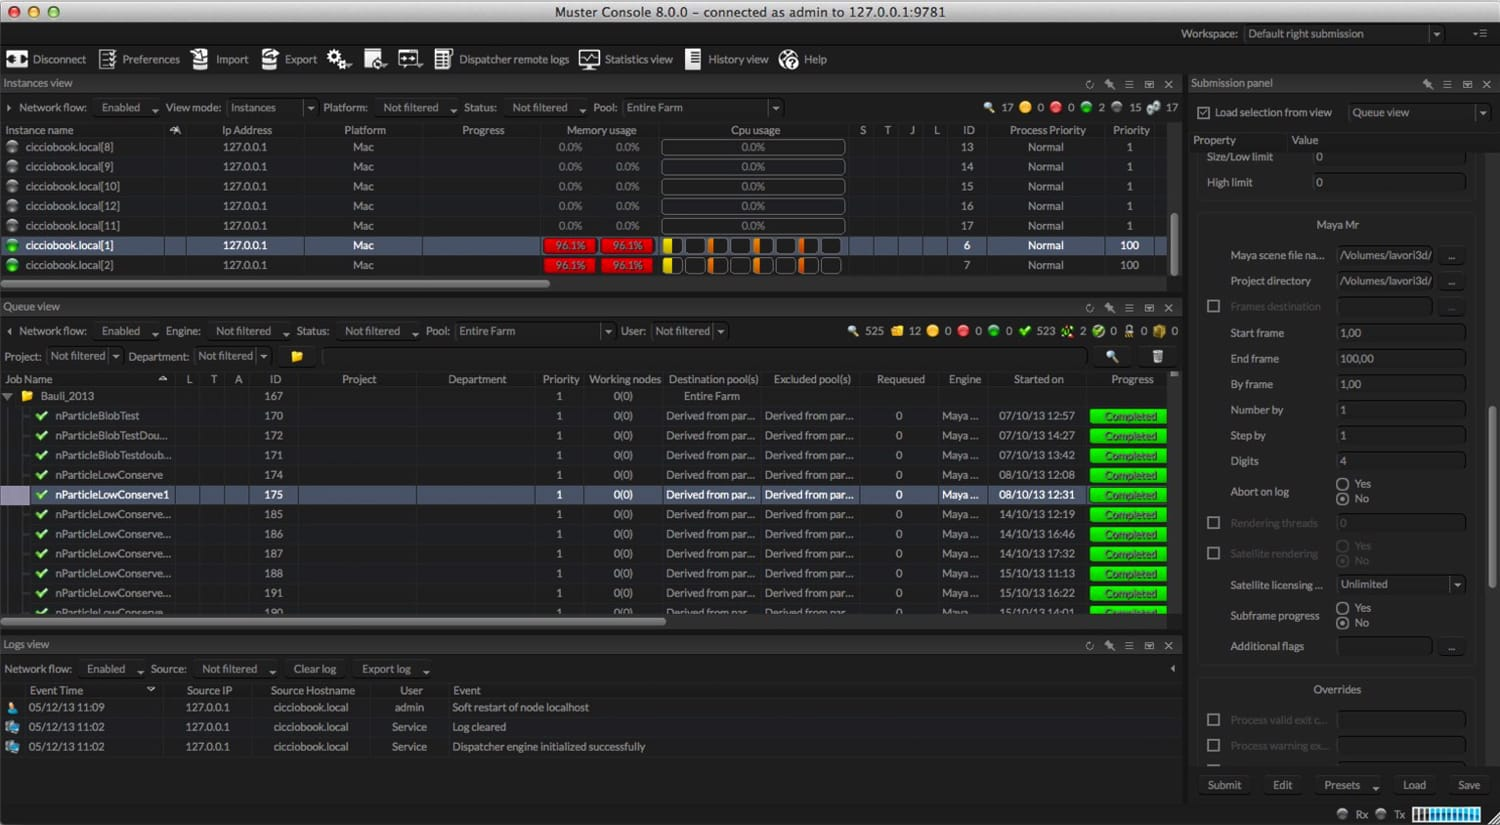 Gregdesign | Network render farm manager software index image 8